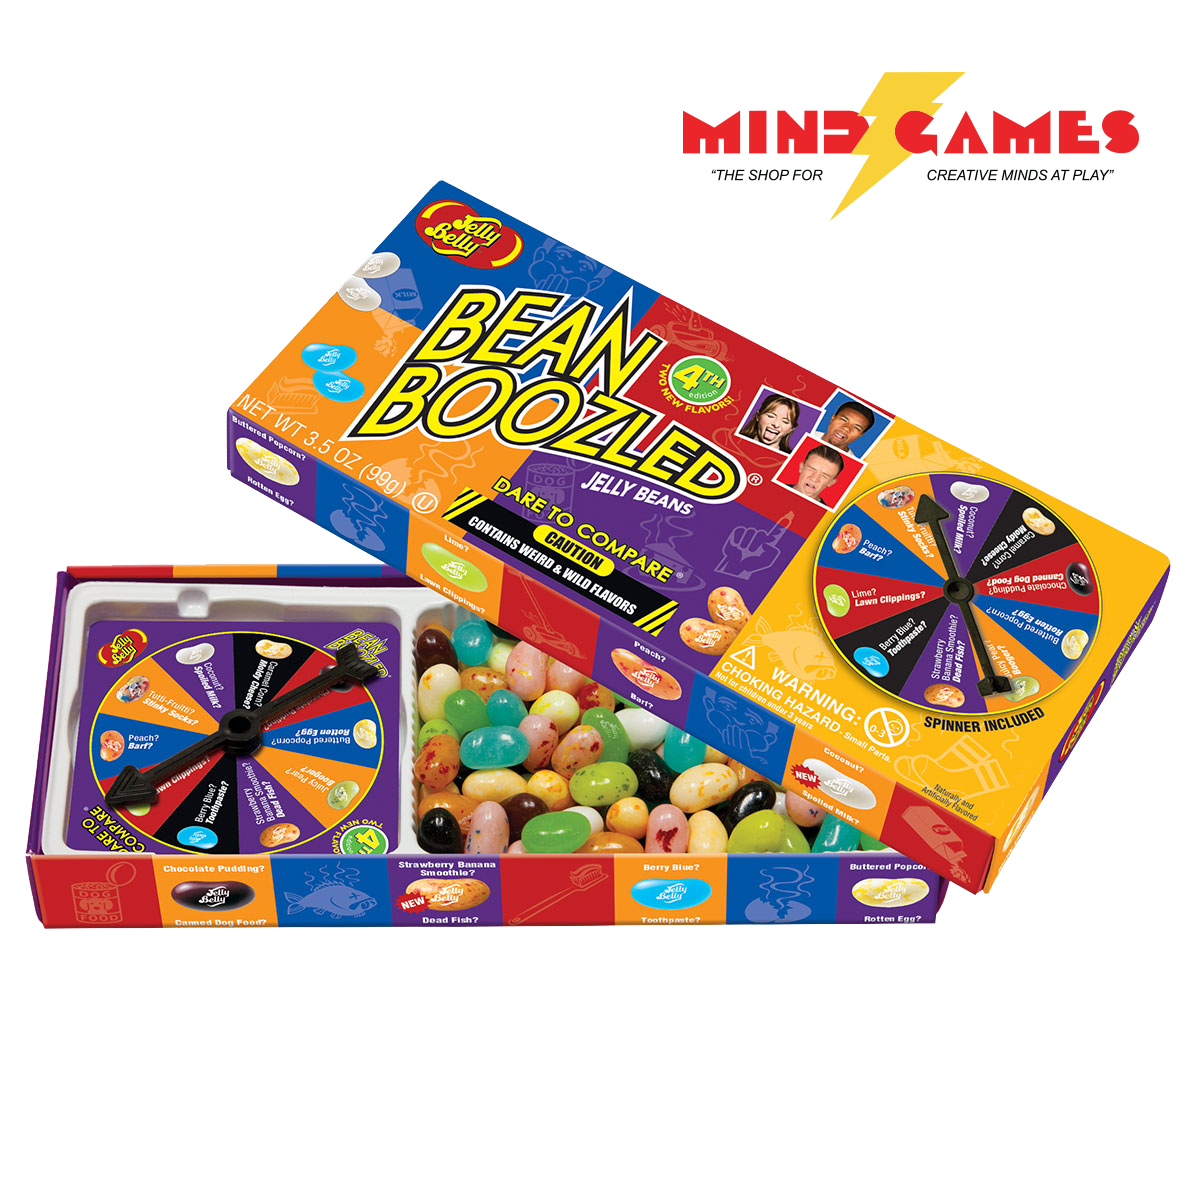 Bamboozle The Kids Family Friends Or Just About Anyone With The Jelly Belly Beanboozled Gift Box That Jelly Bean Gifts Jelly Belly Bean Boozled Jelly Beans